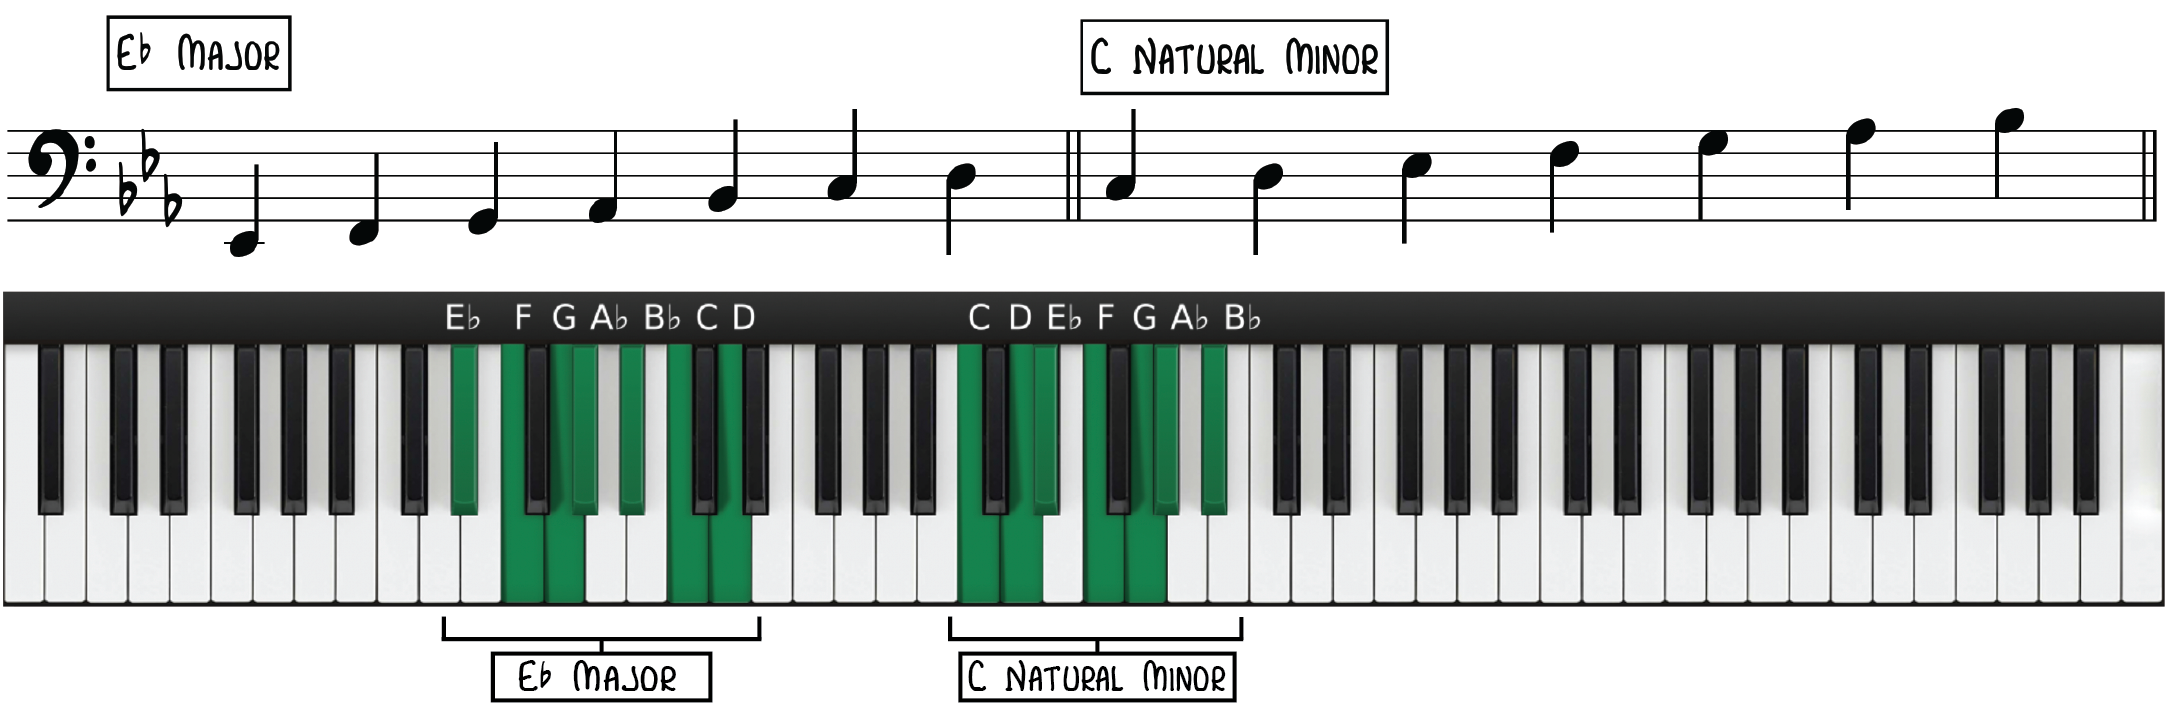 Eb Major & C Minor—Relative Key Signatures